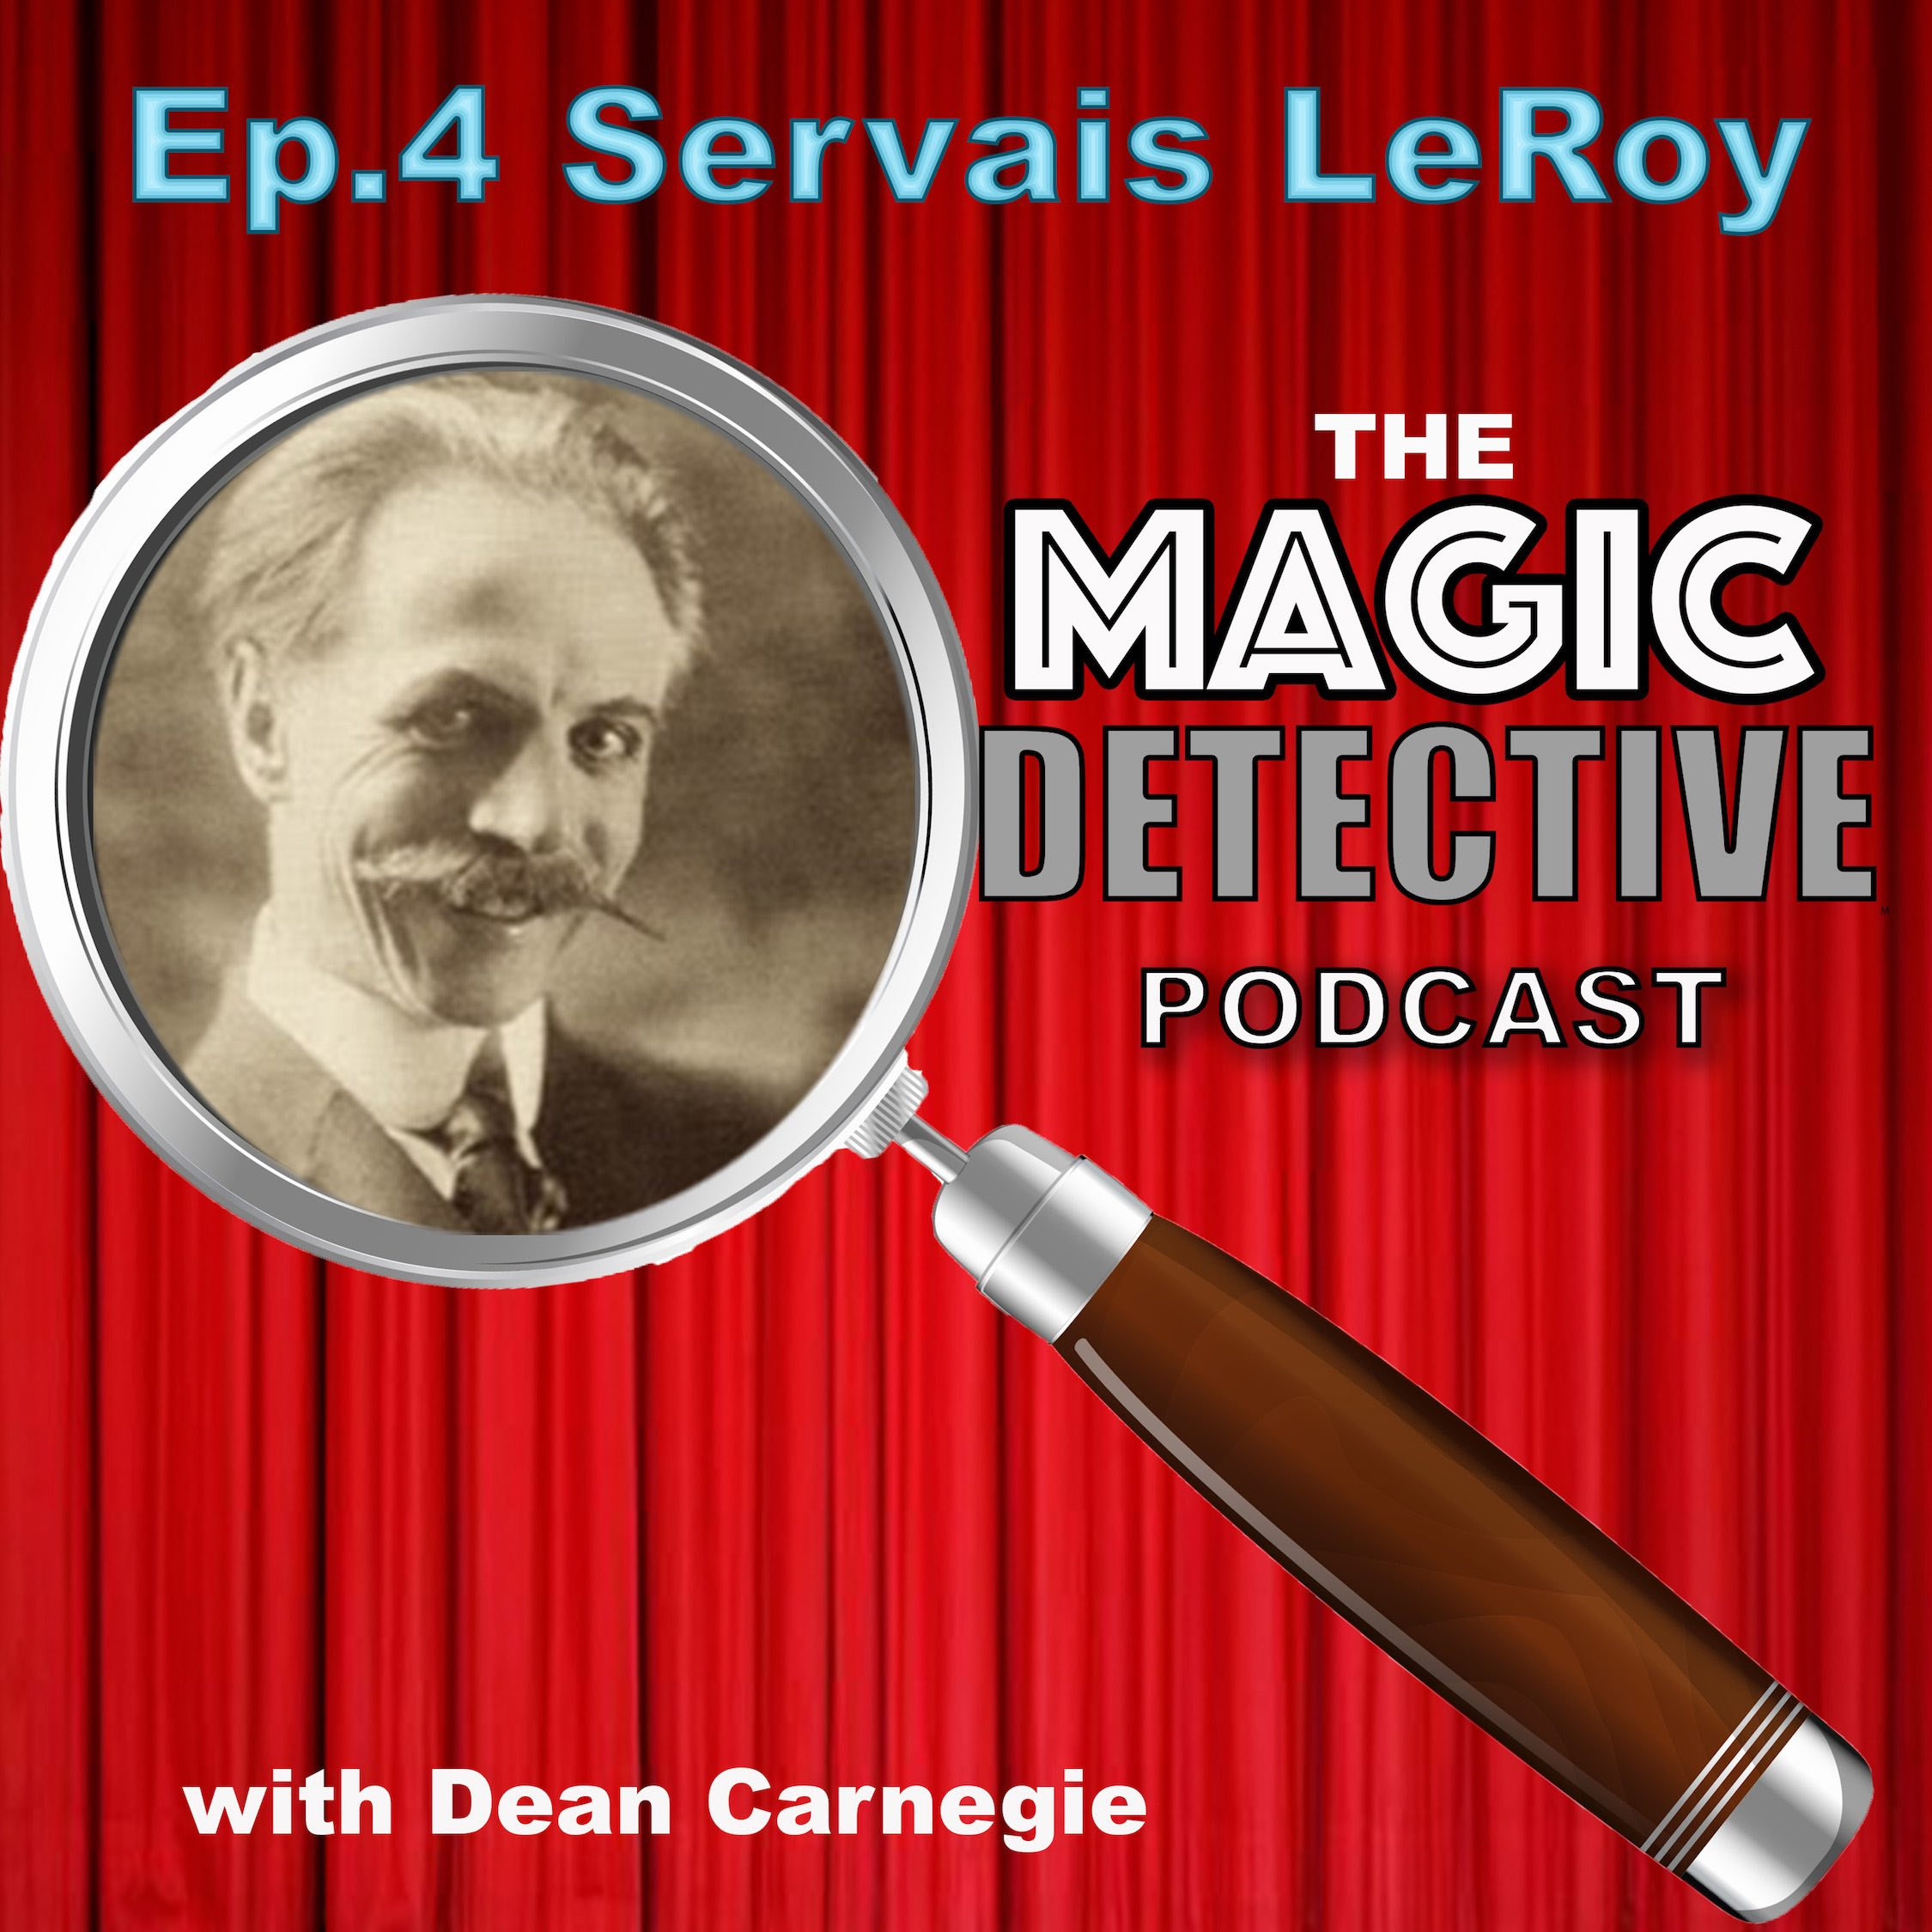 Magic Detective Podcast Ep 4 - Servais LeRoy